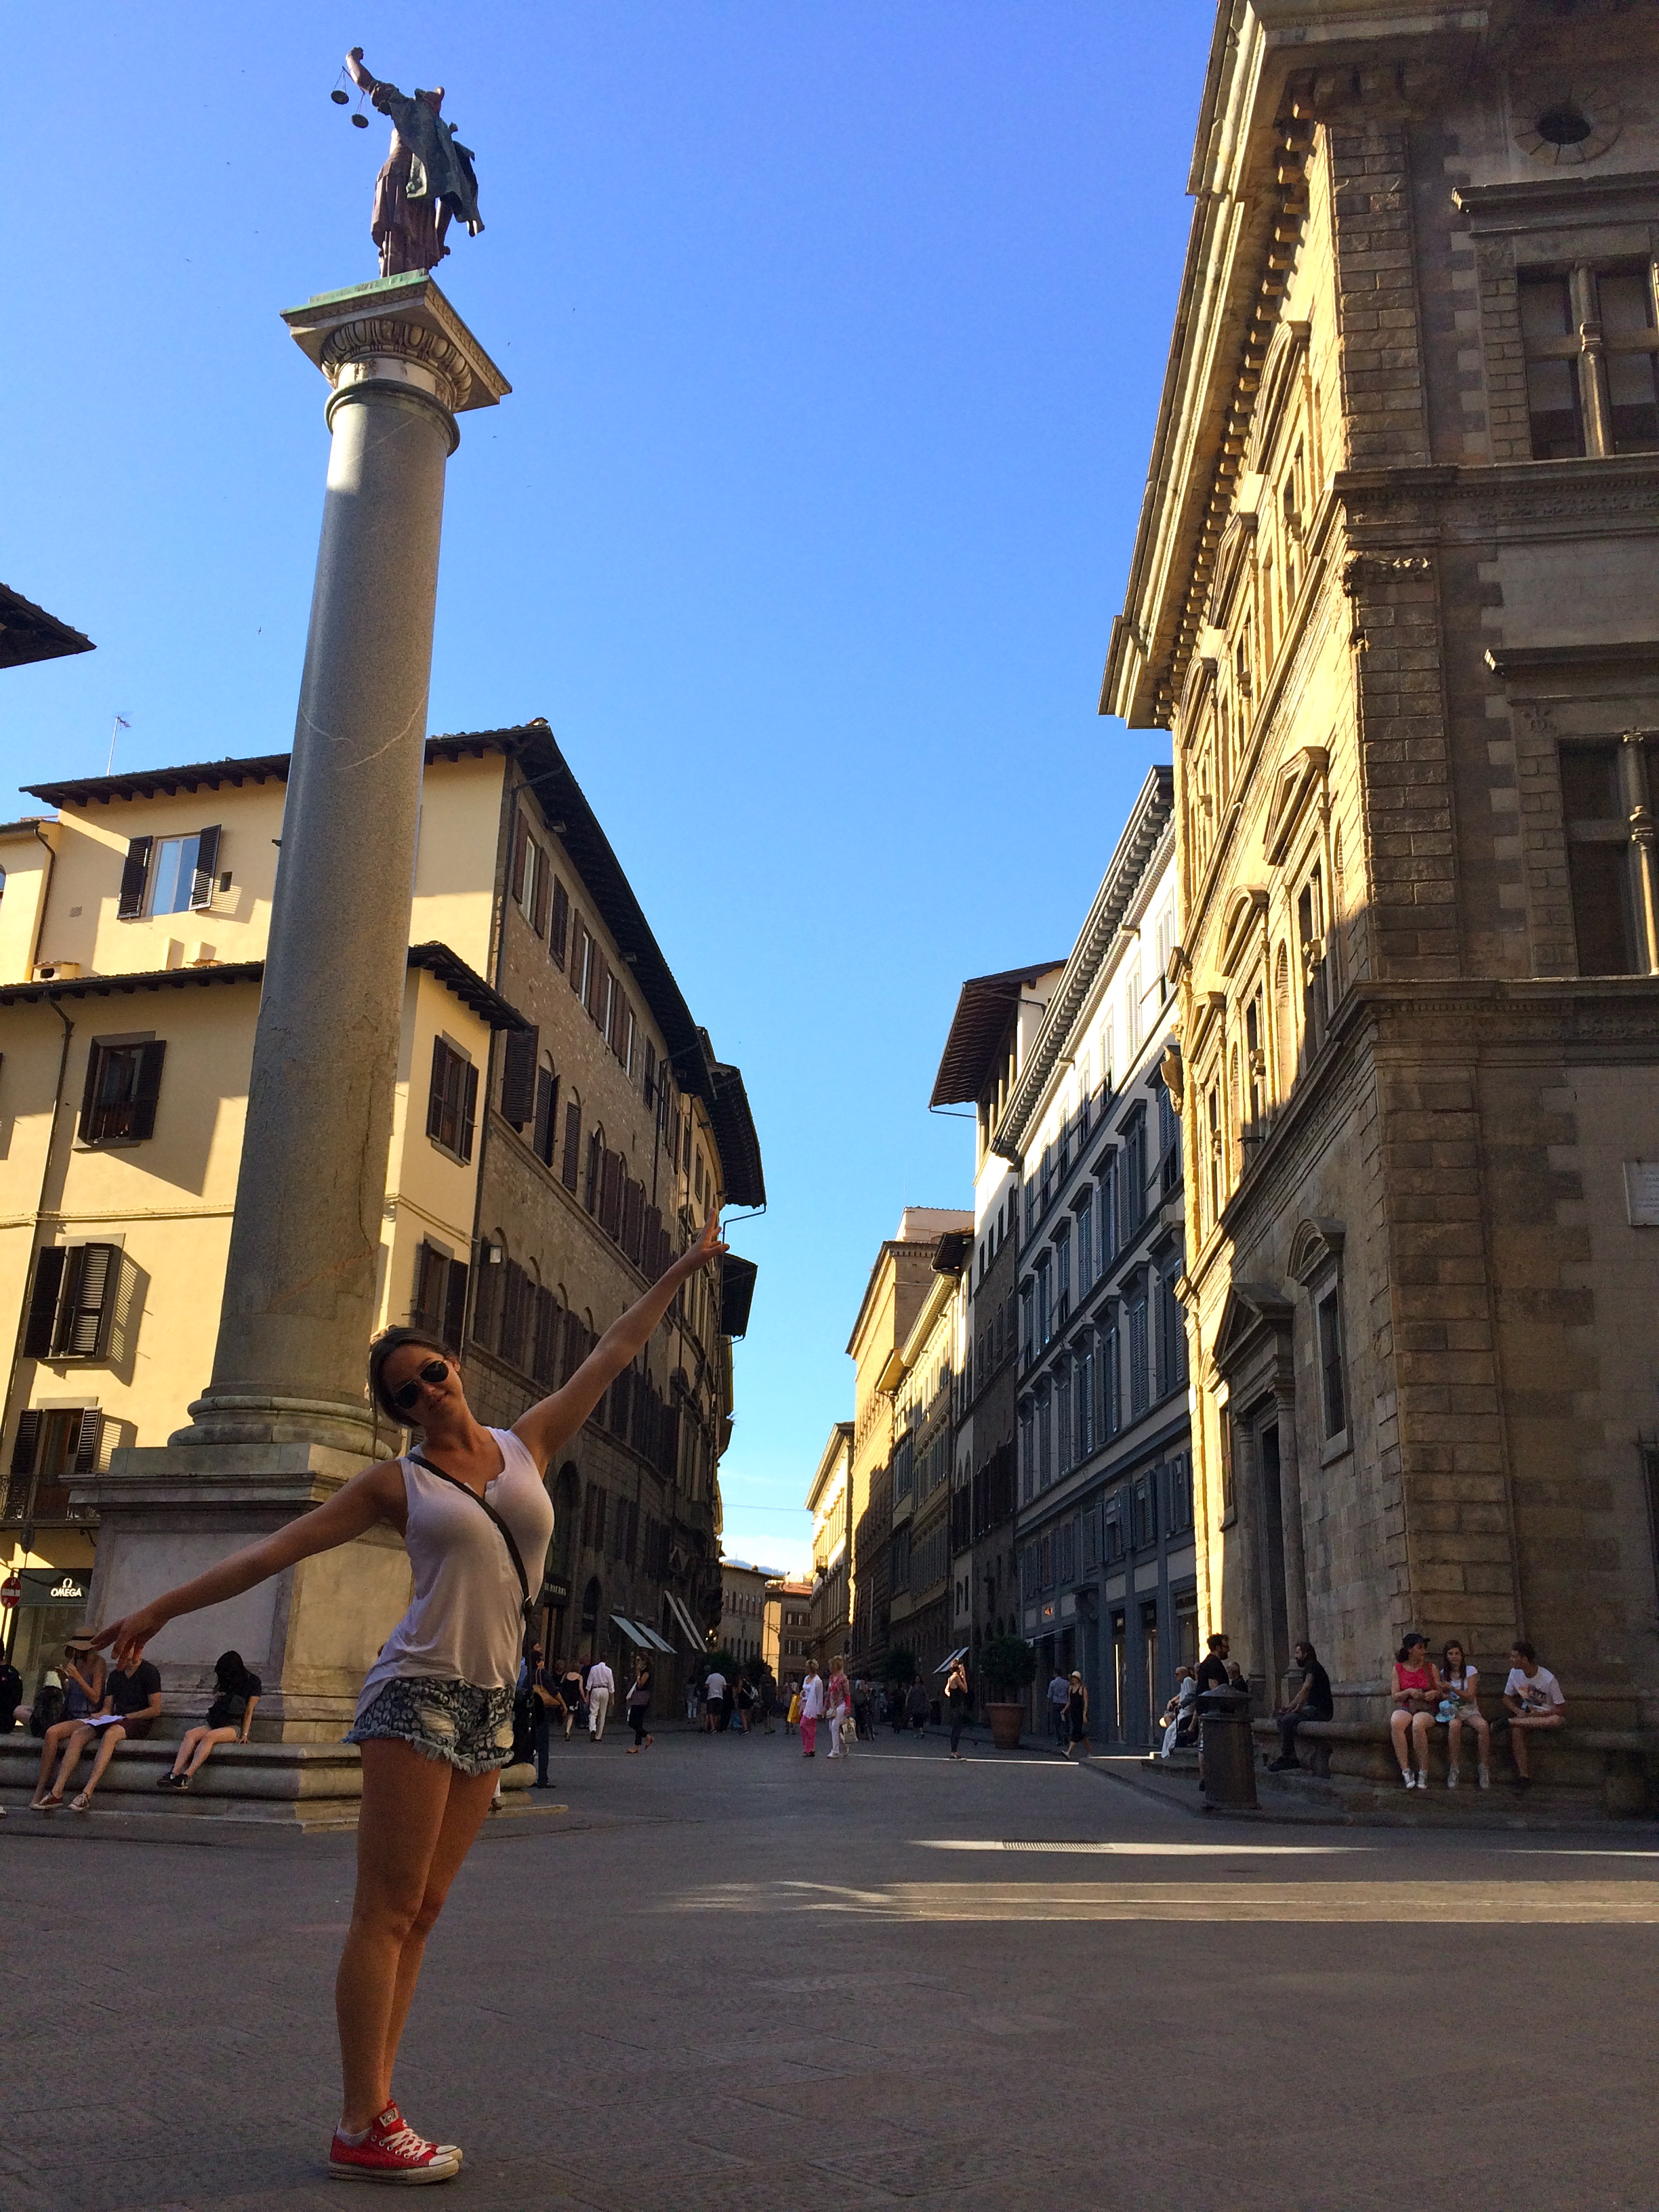 ◆ Kenzie in the streets of Firenze